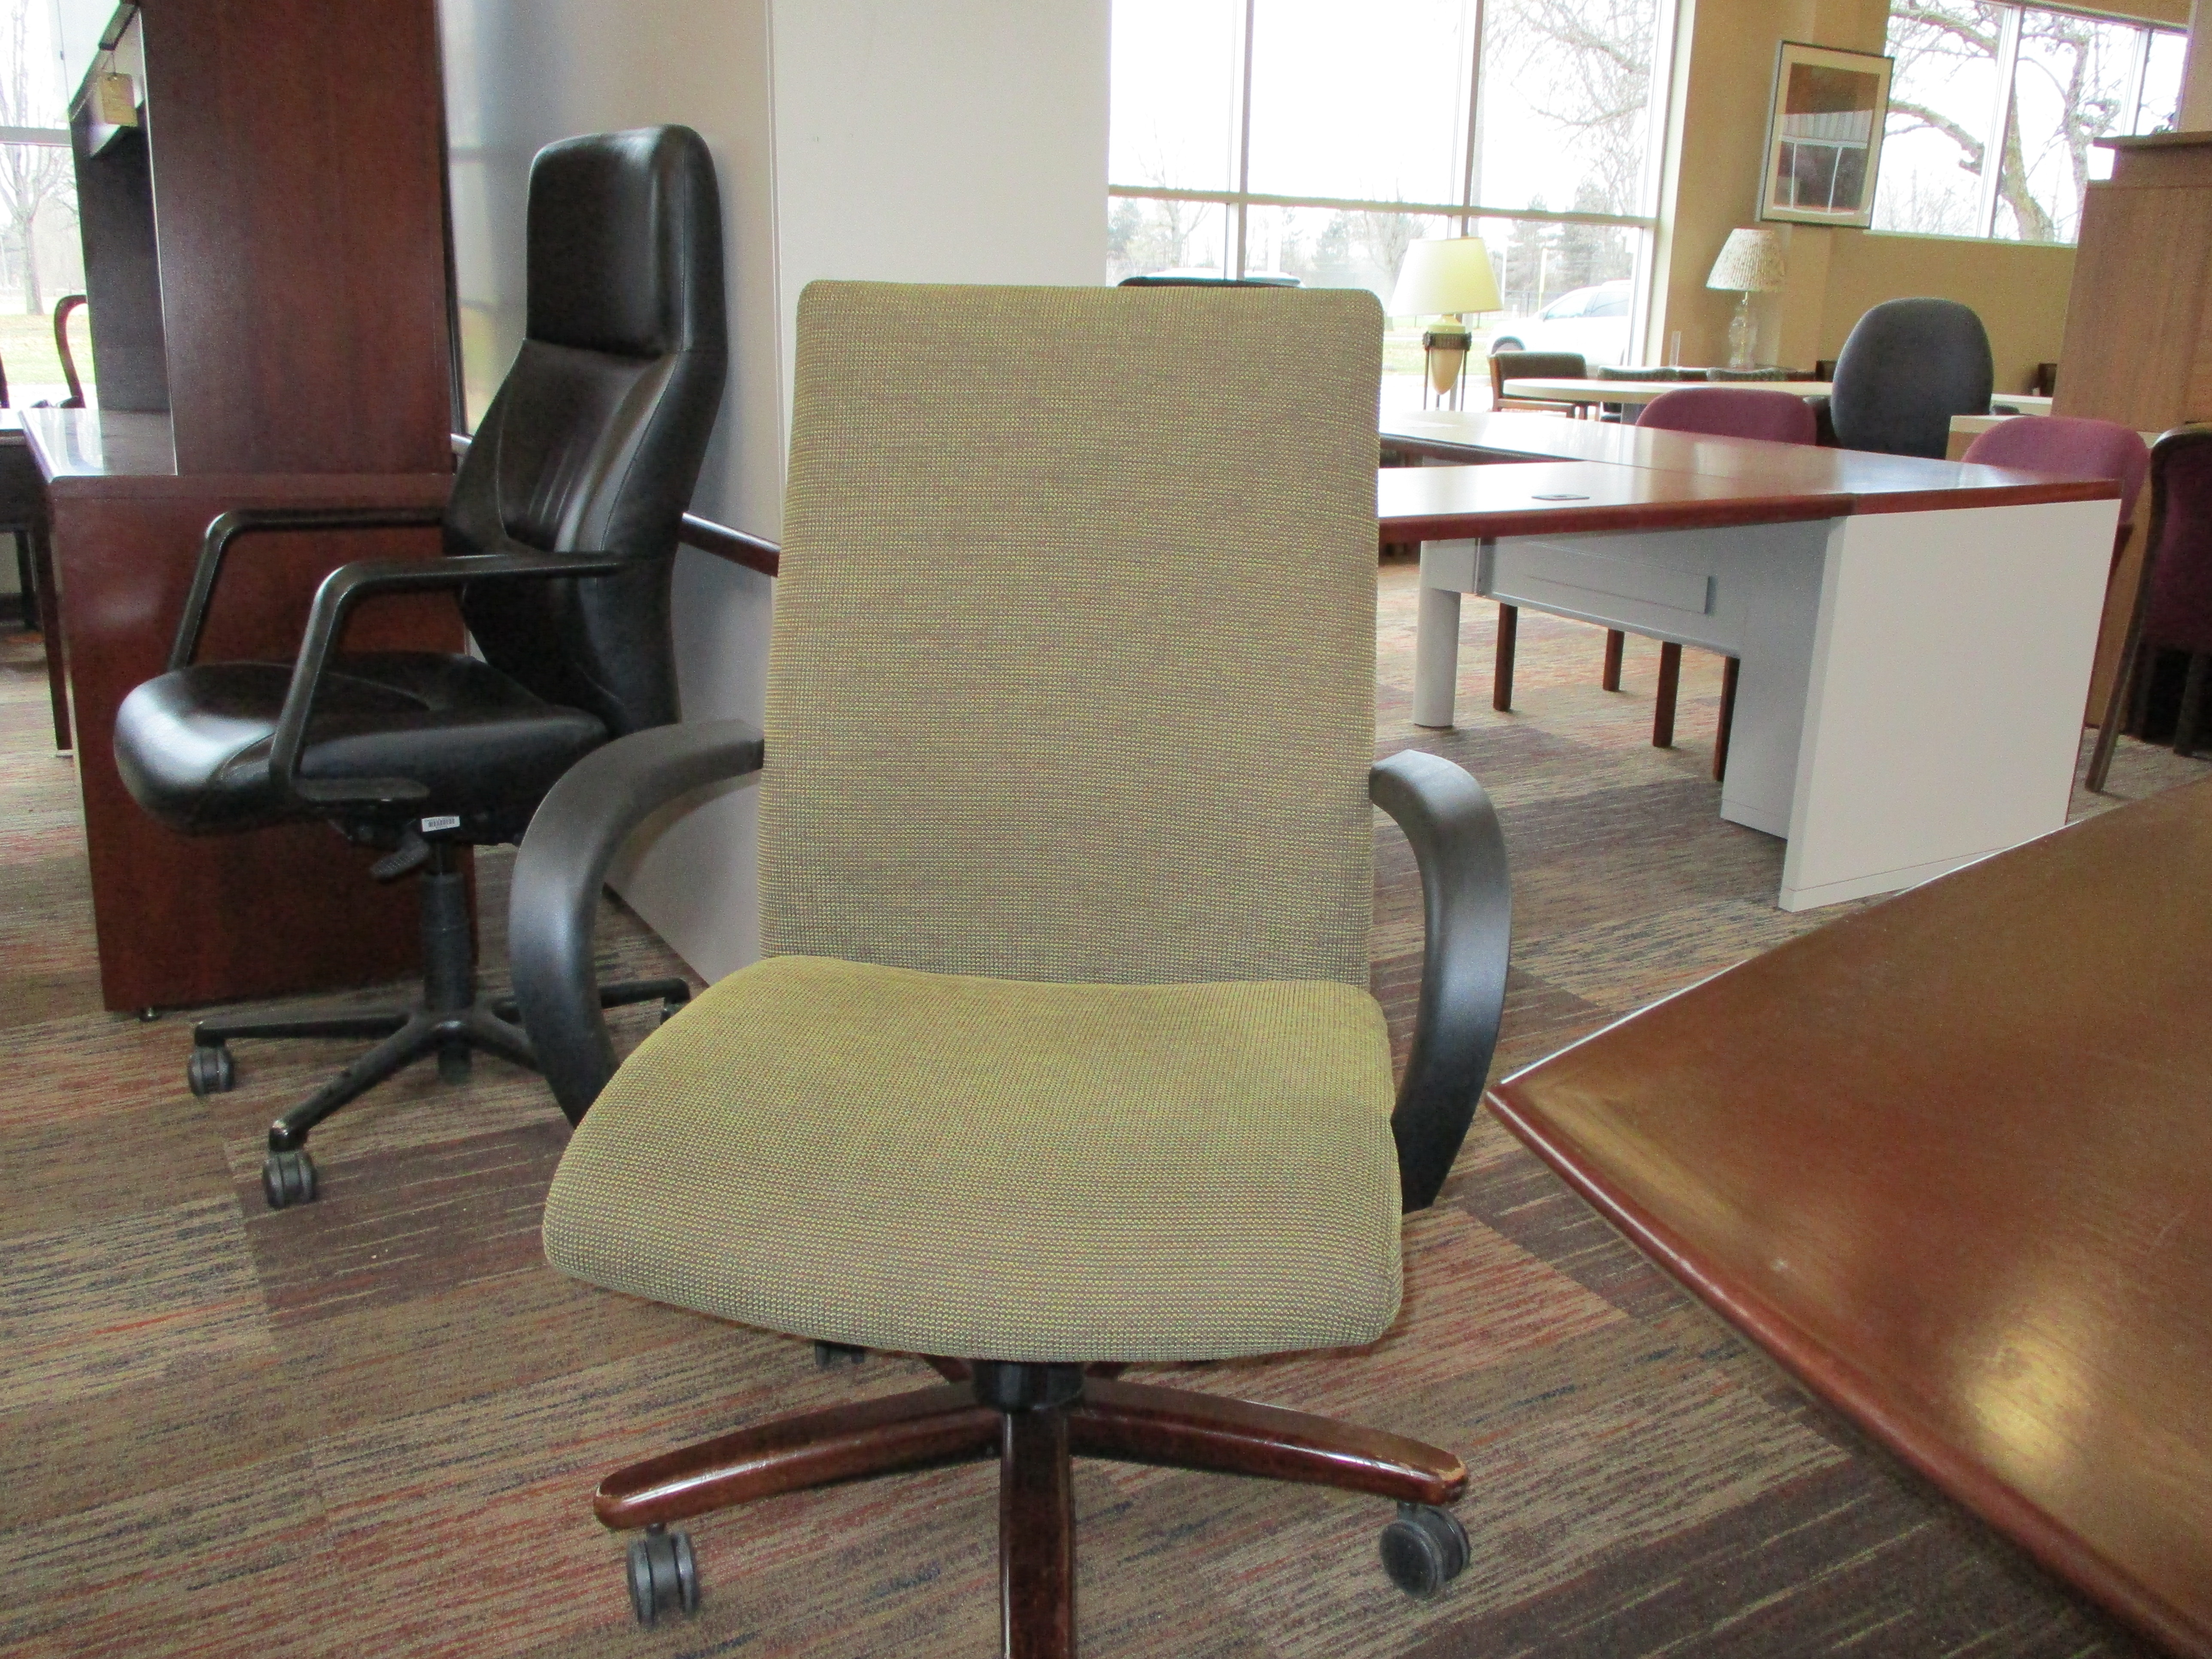 used conference room chairs chair design solidworks archives twin cities office furniture cabot wrenn